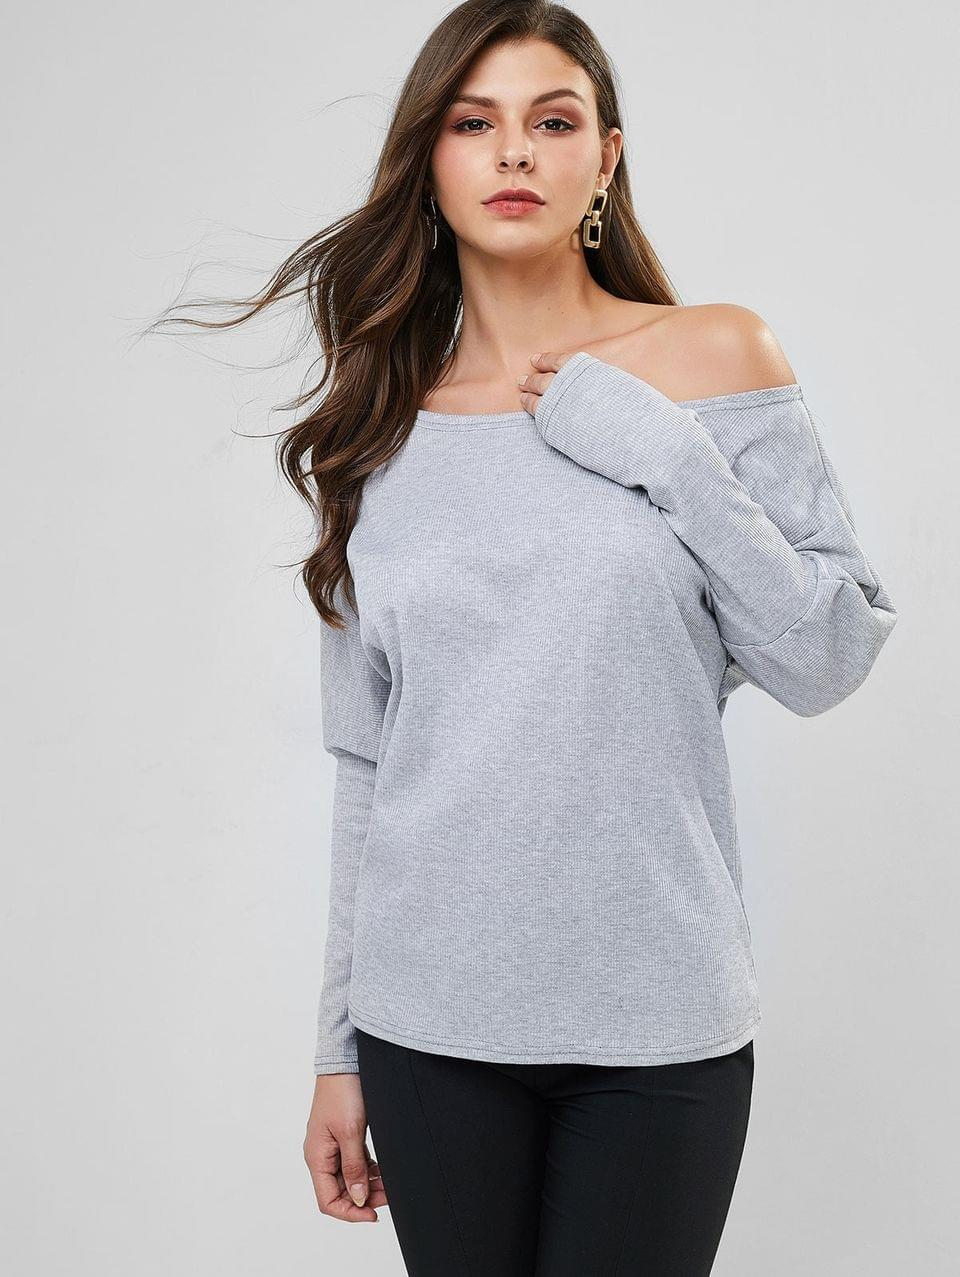 Women's Batwing Sleeve Convertible Off Shoulder Ribbed Top - Gray